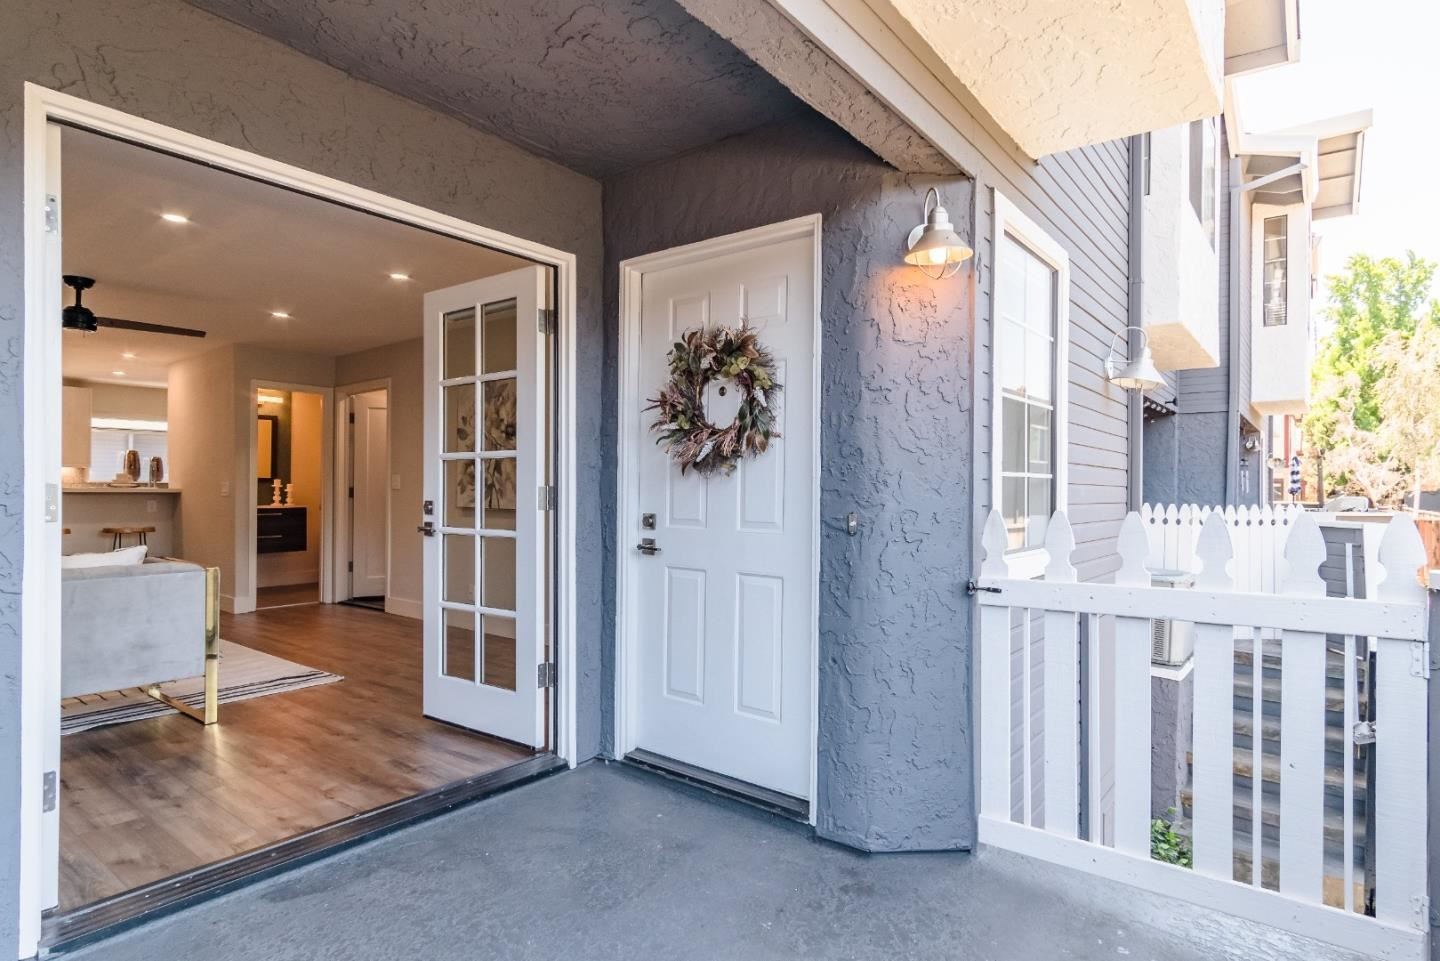 Photo for 75 Union Avenue #4, CAMPBELL, CA 95008 (MLS # ML81852567)